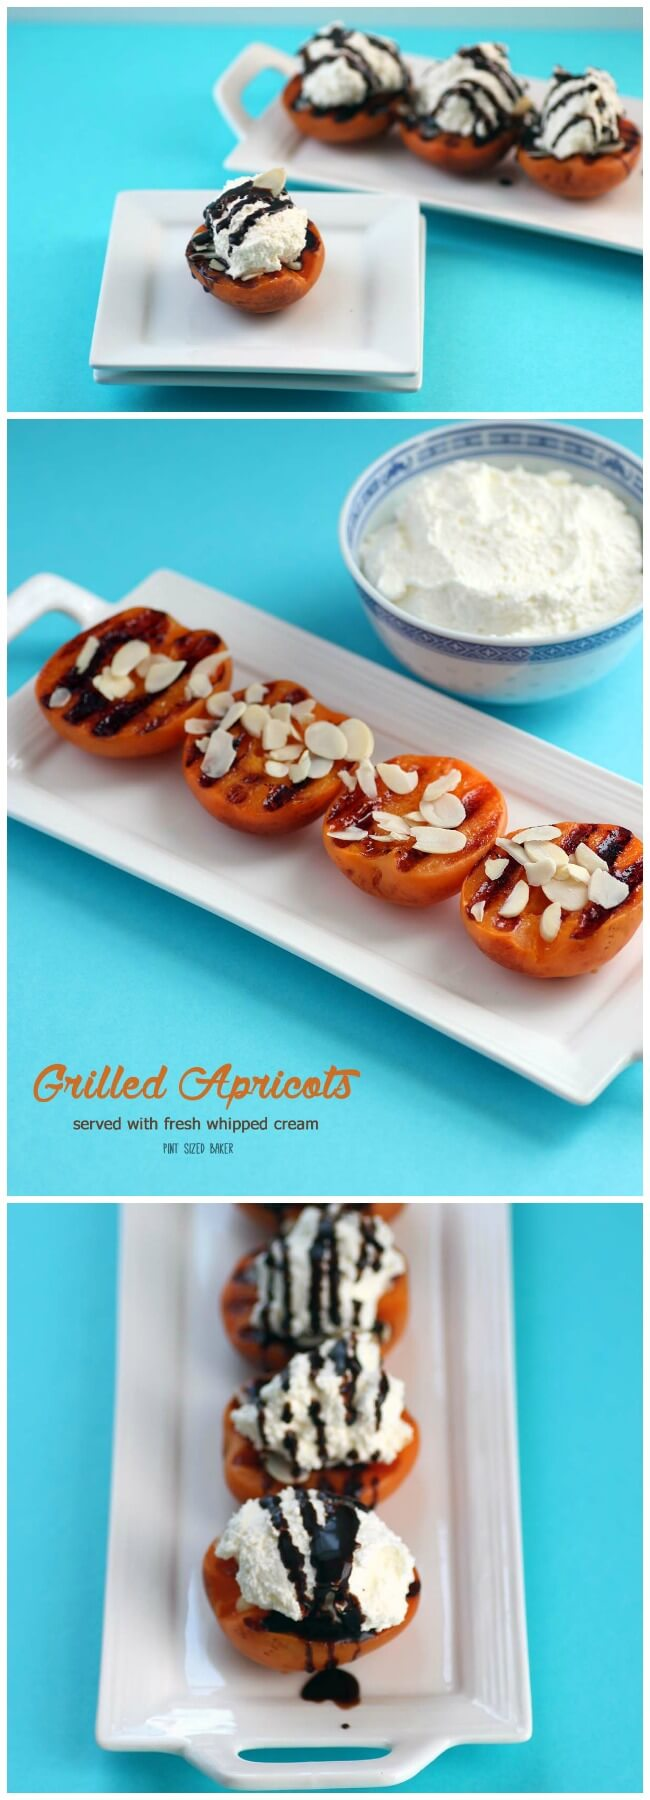 Don't let those coals go to waste after grilling dinner. Make grilled apricots for dessert and top them with fresh whipped cream and almond slivers.